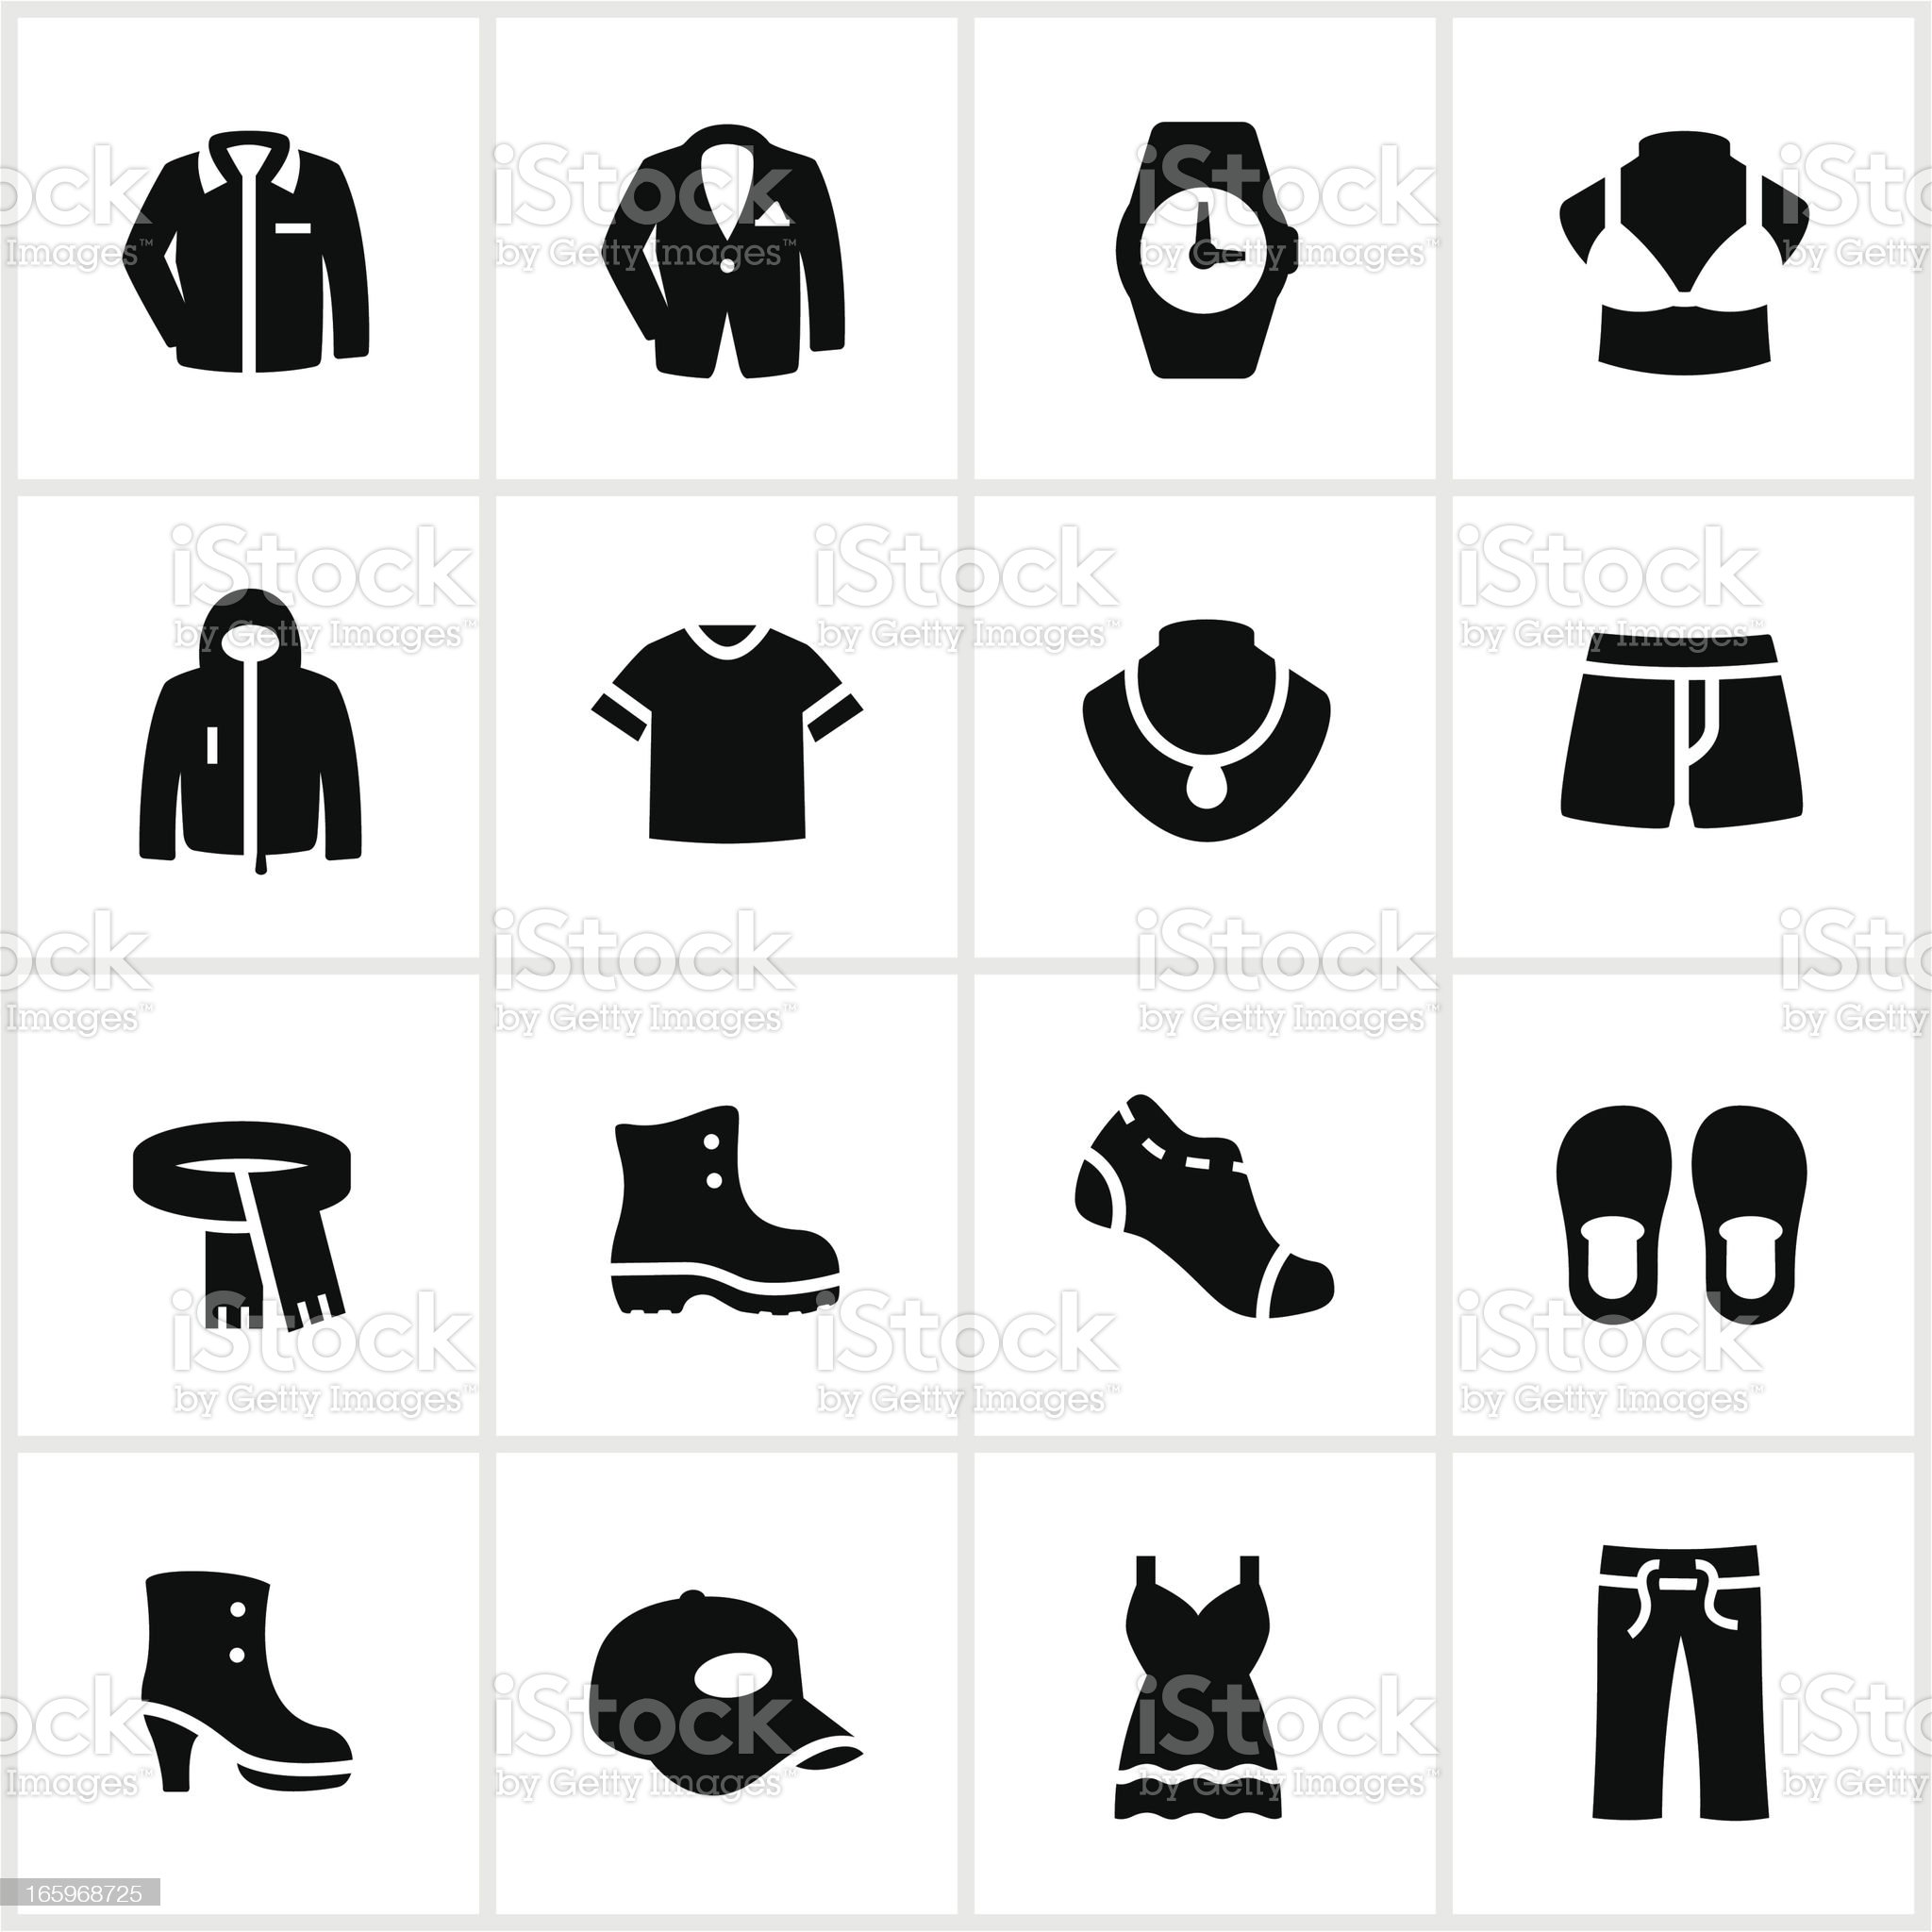 Black and white department store clothing icons royalty-free stock vector art